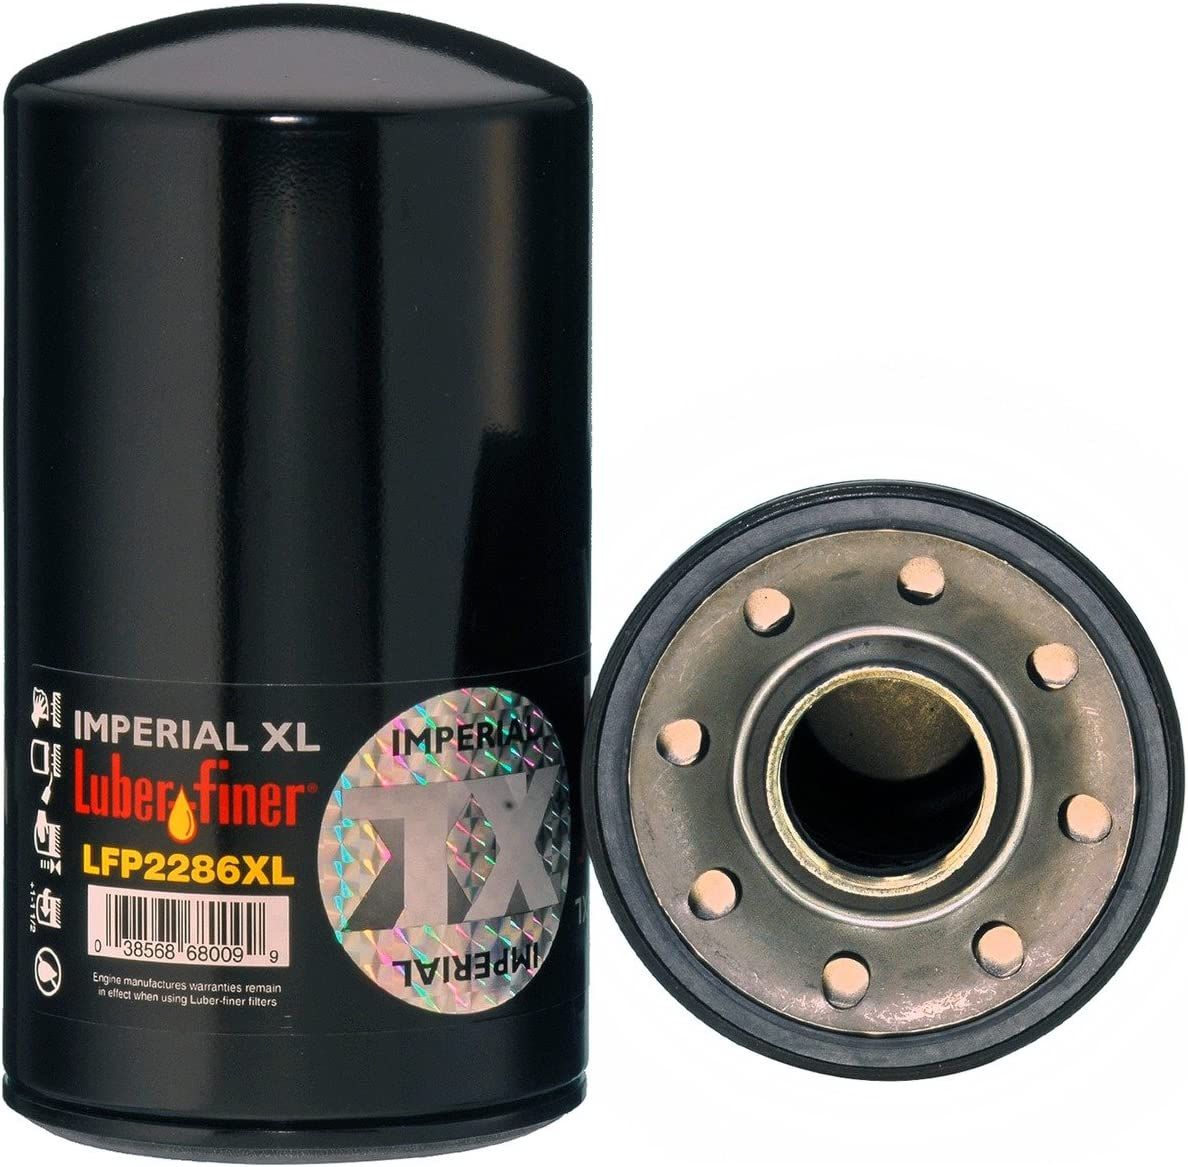 Luber-finer LFP2286XL Heavy Duty Oil Filter